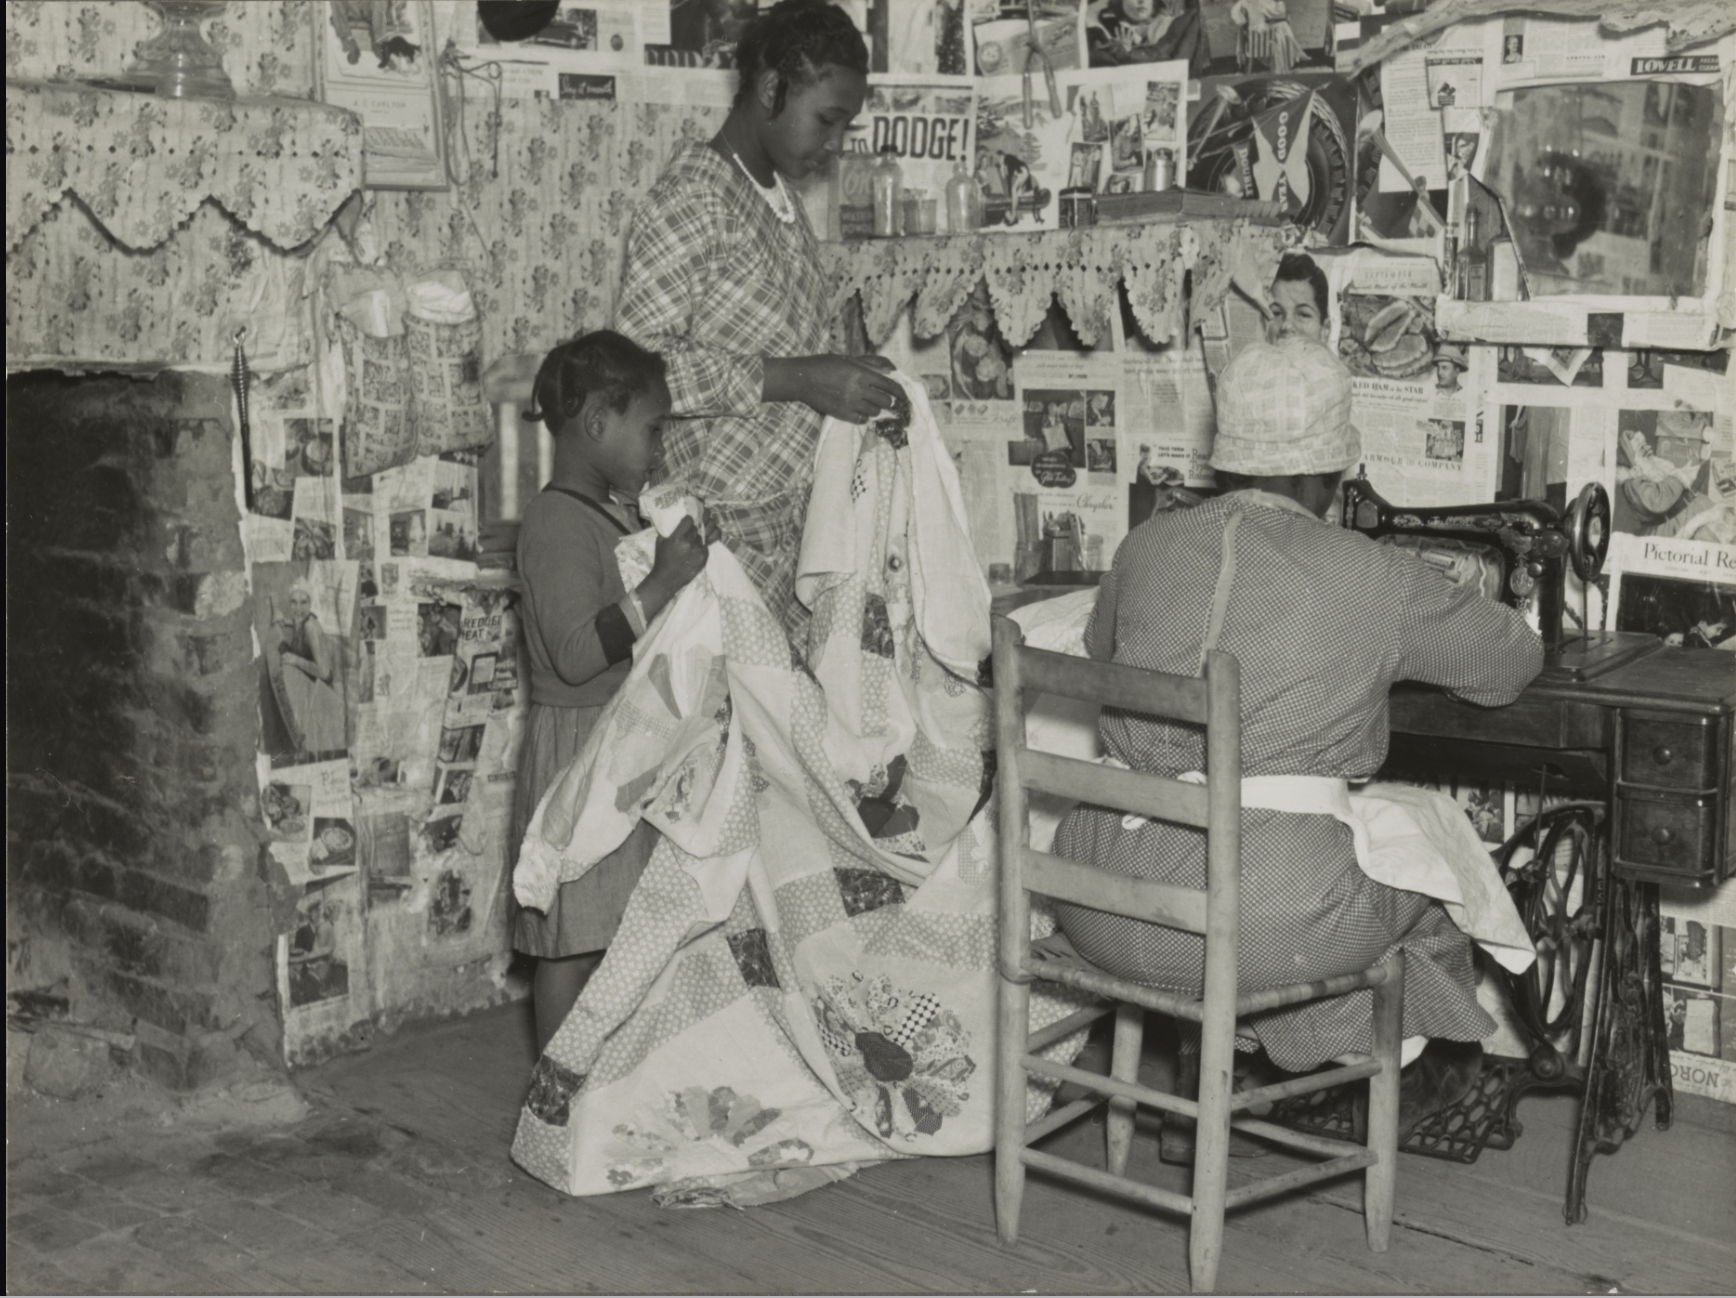 Lucy Mooney making a quilt with her granddaughters. Gee's Bend 1937. (Library of Congress)